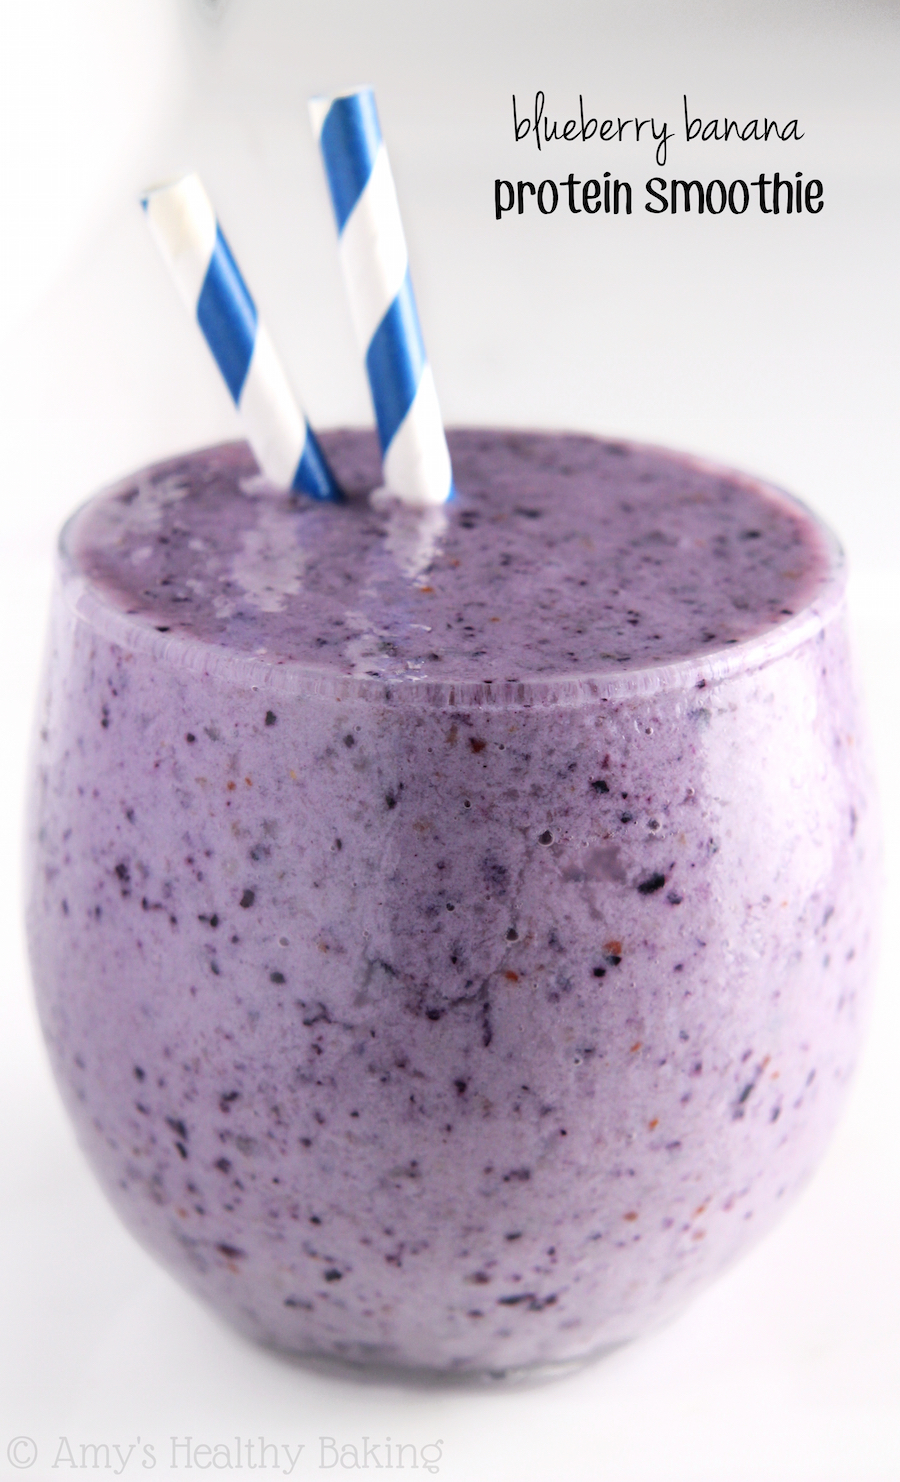 blueberry-banana-protein-smoothie